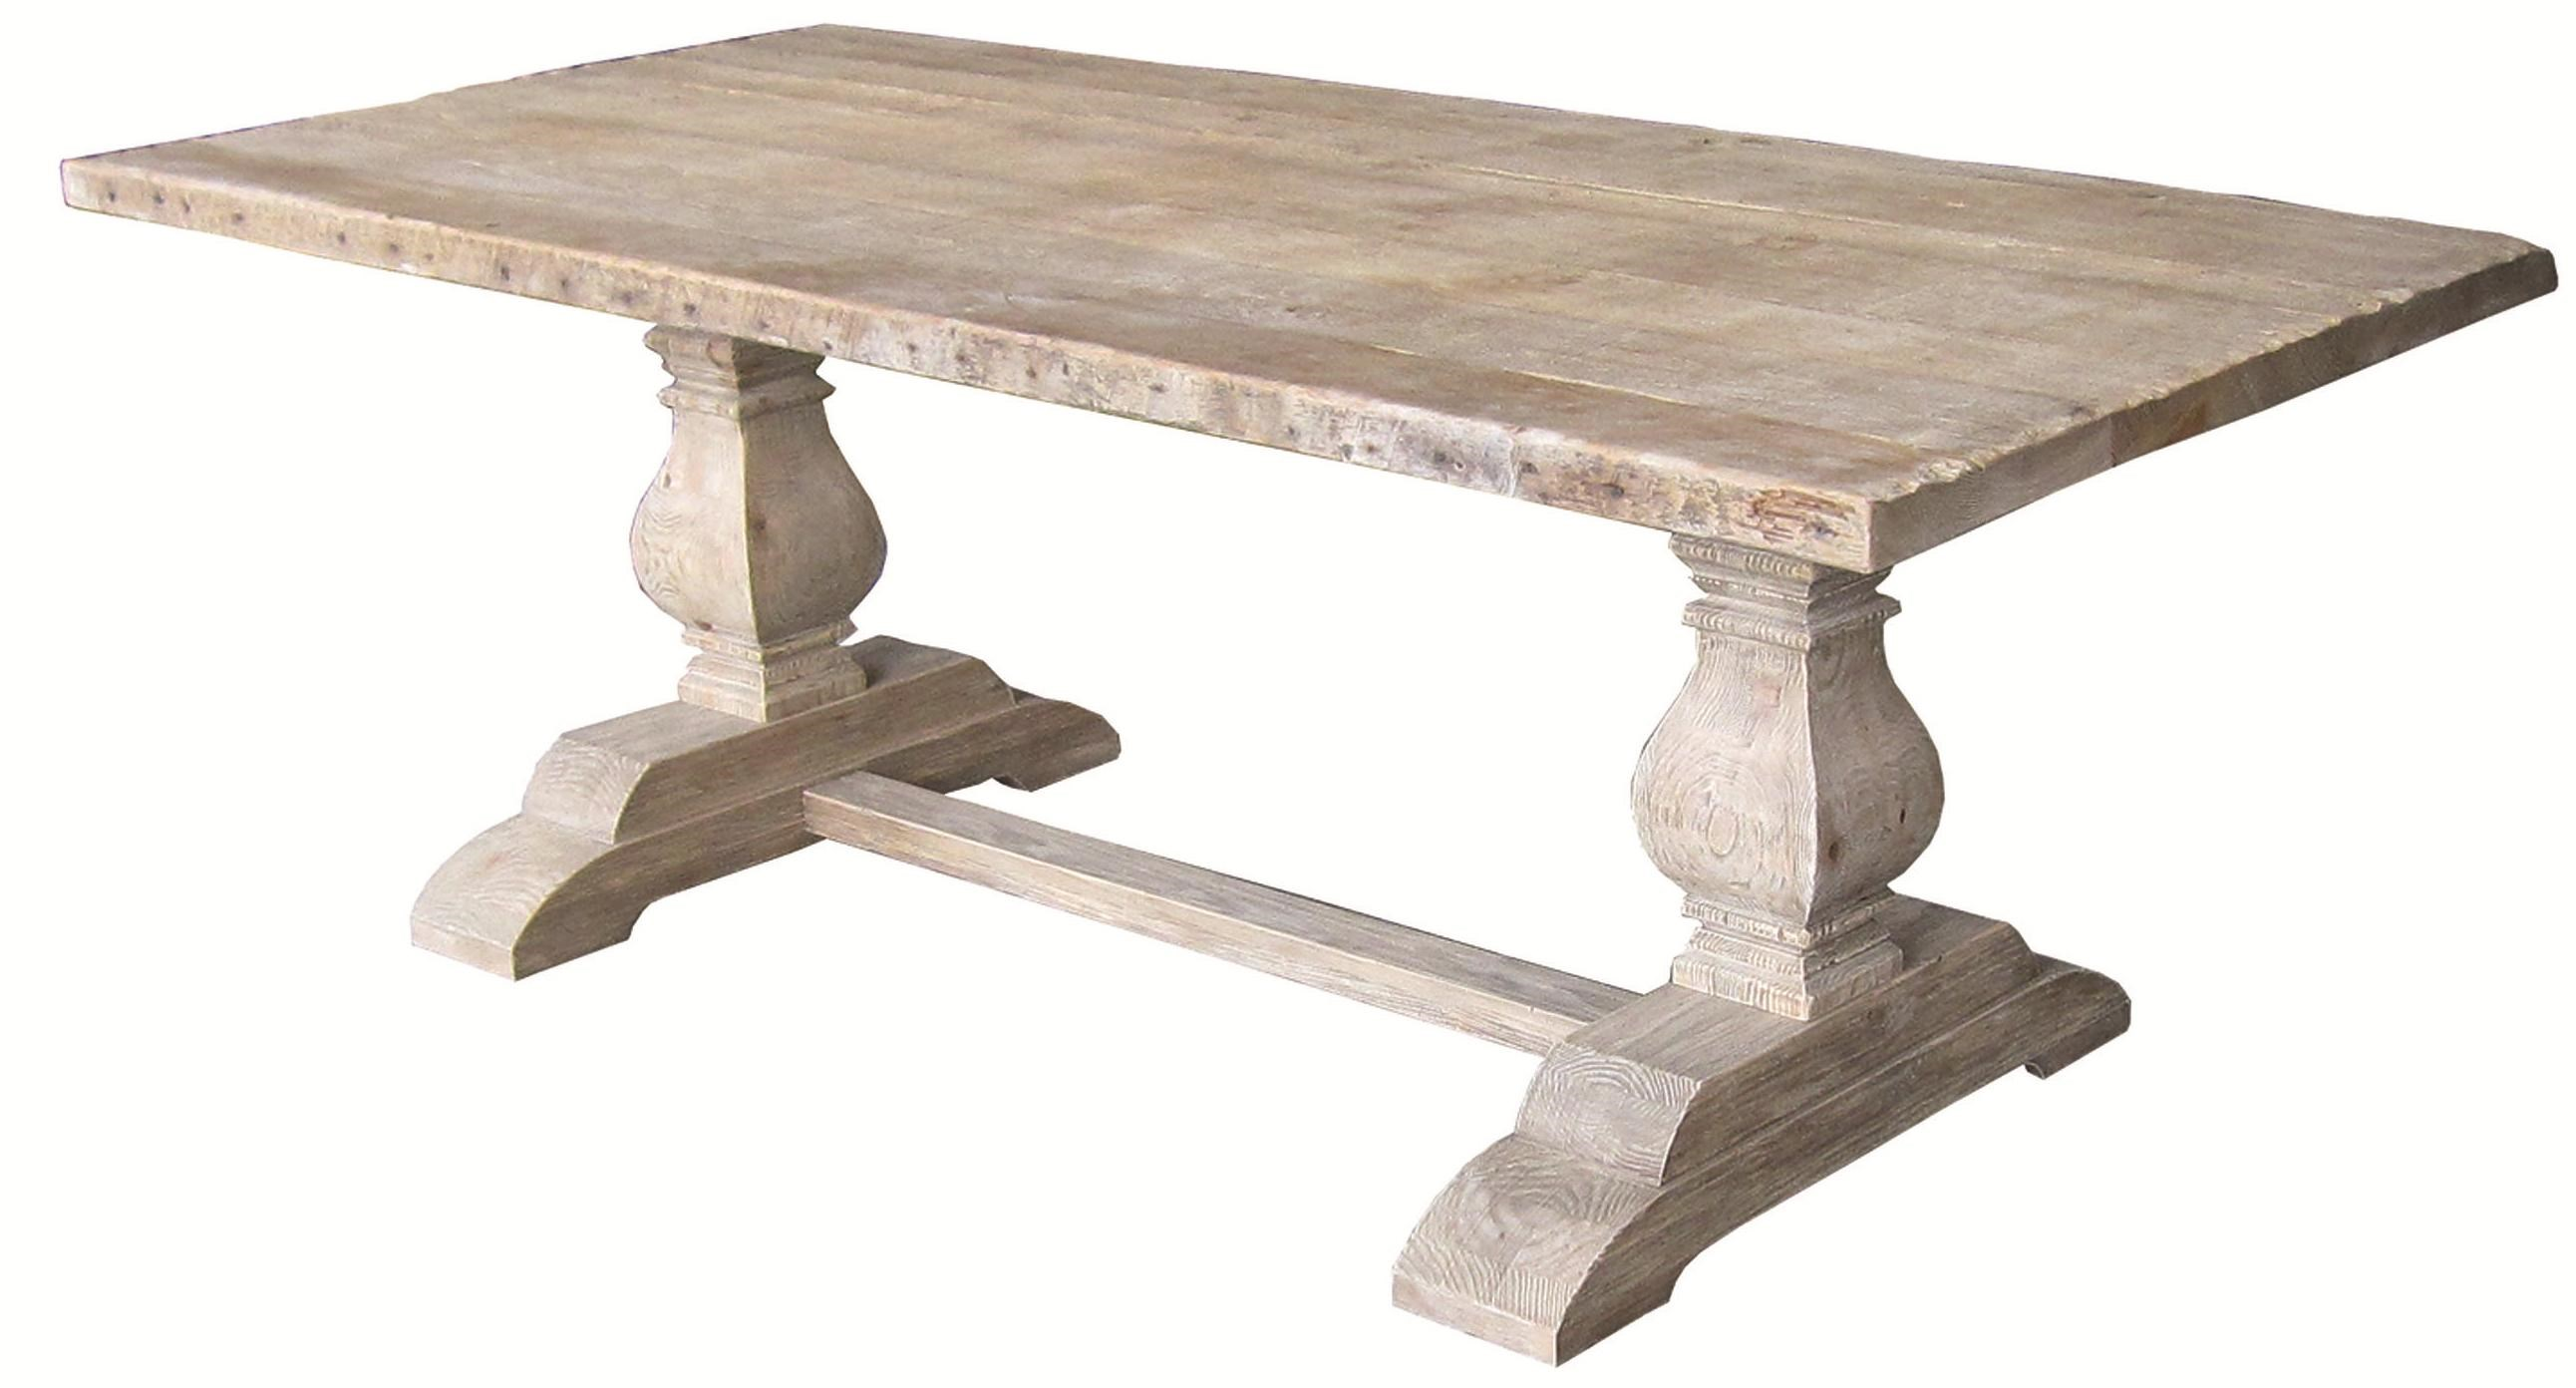 Exceptional Four Hands Hughes Rectangular Dining Table With Double Sculptured Bases